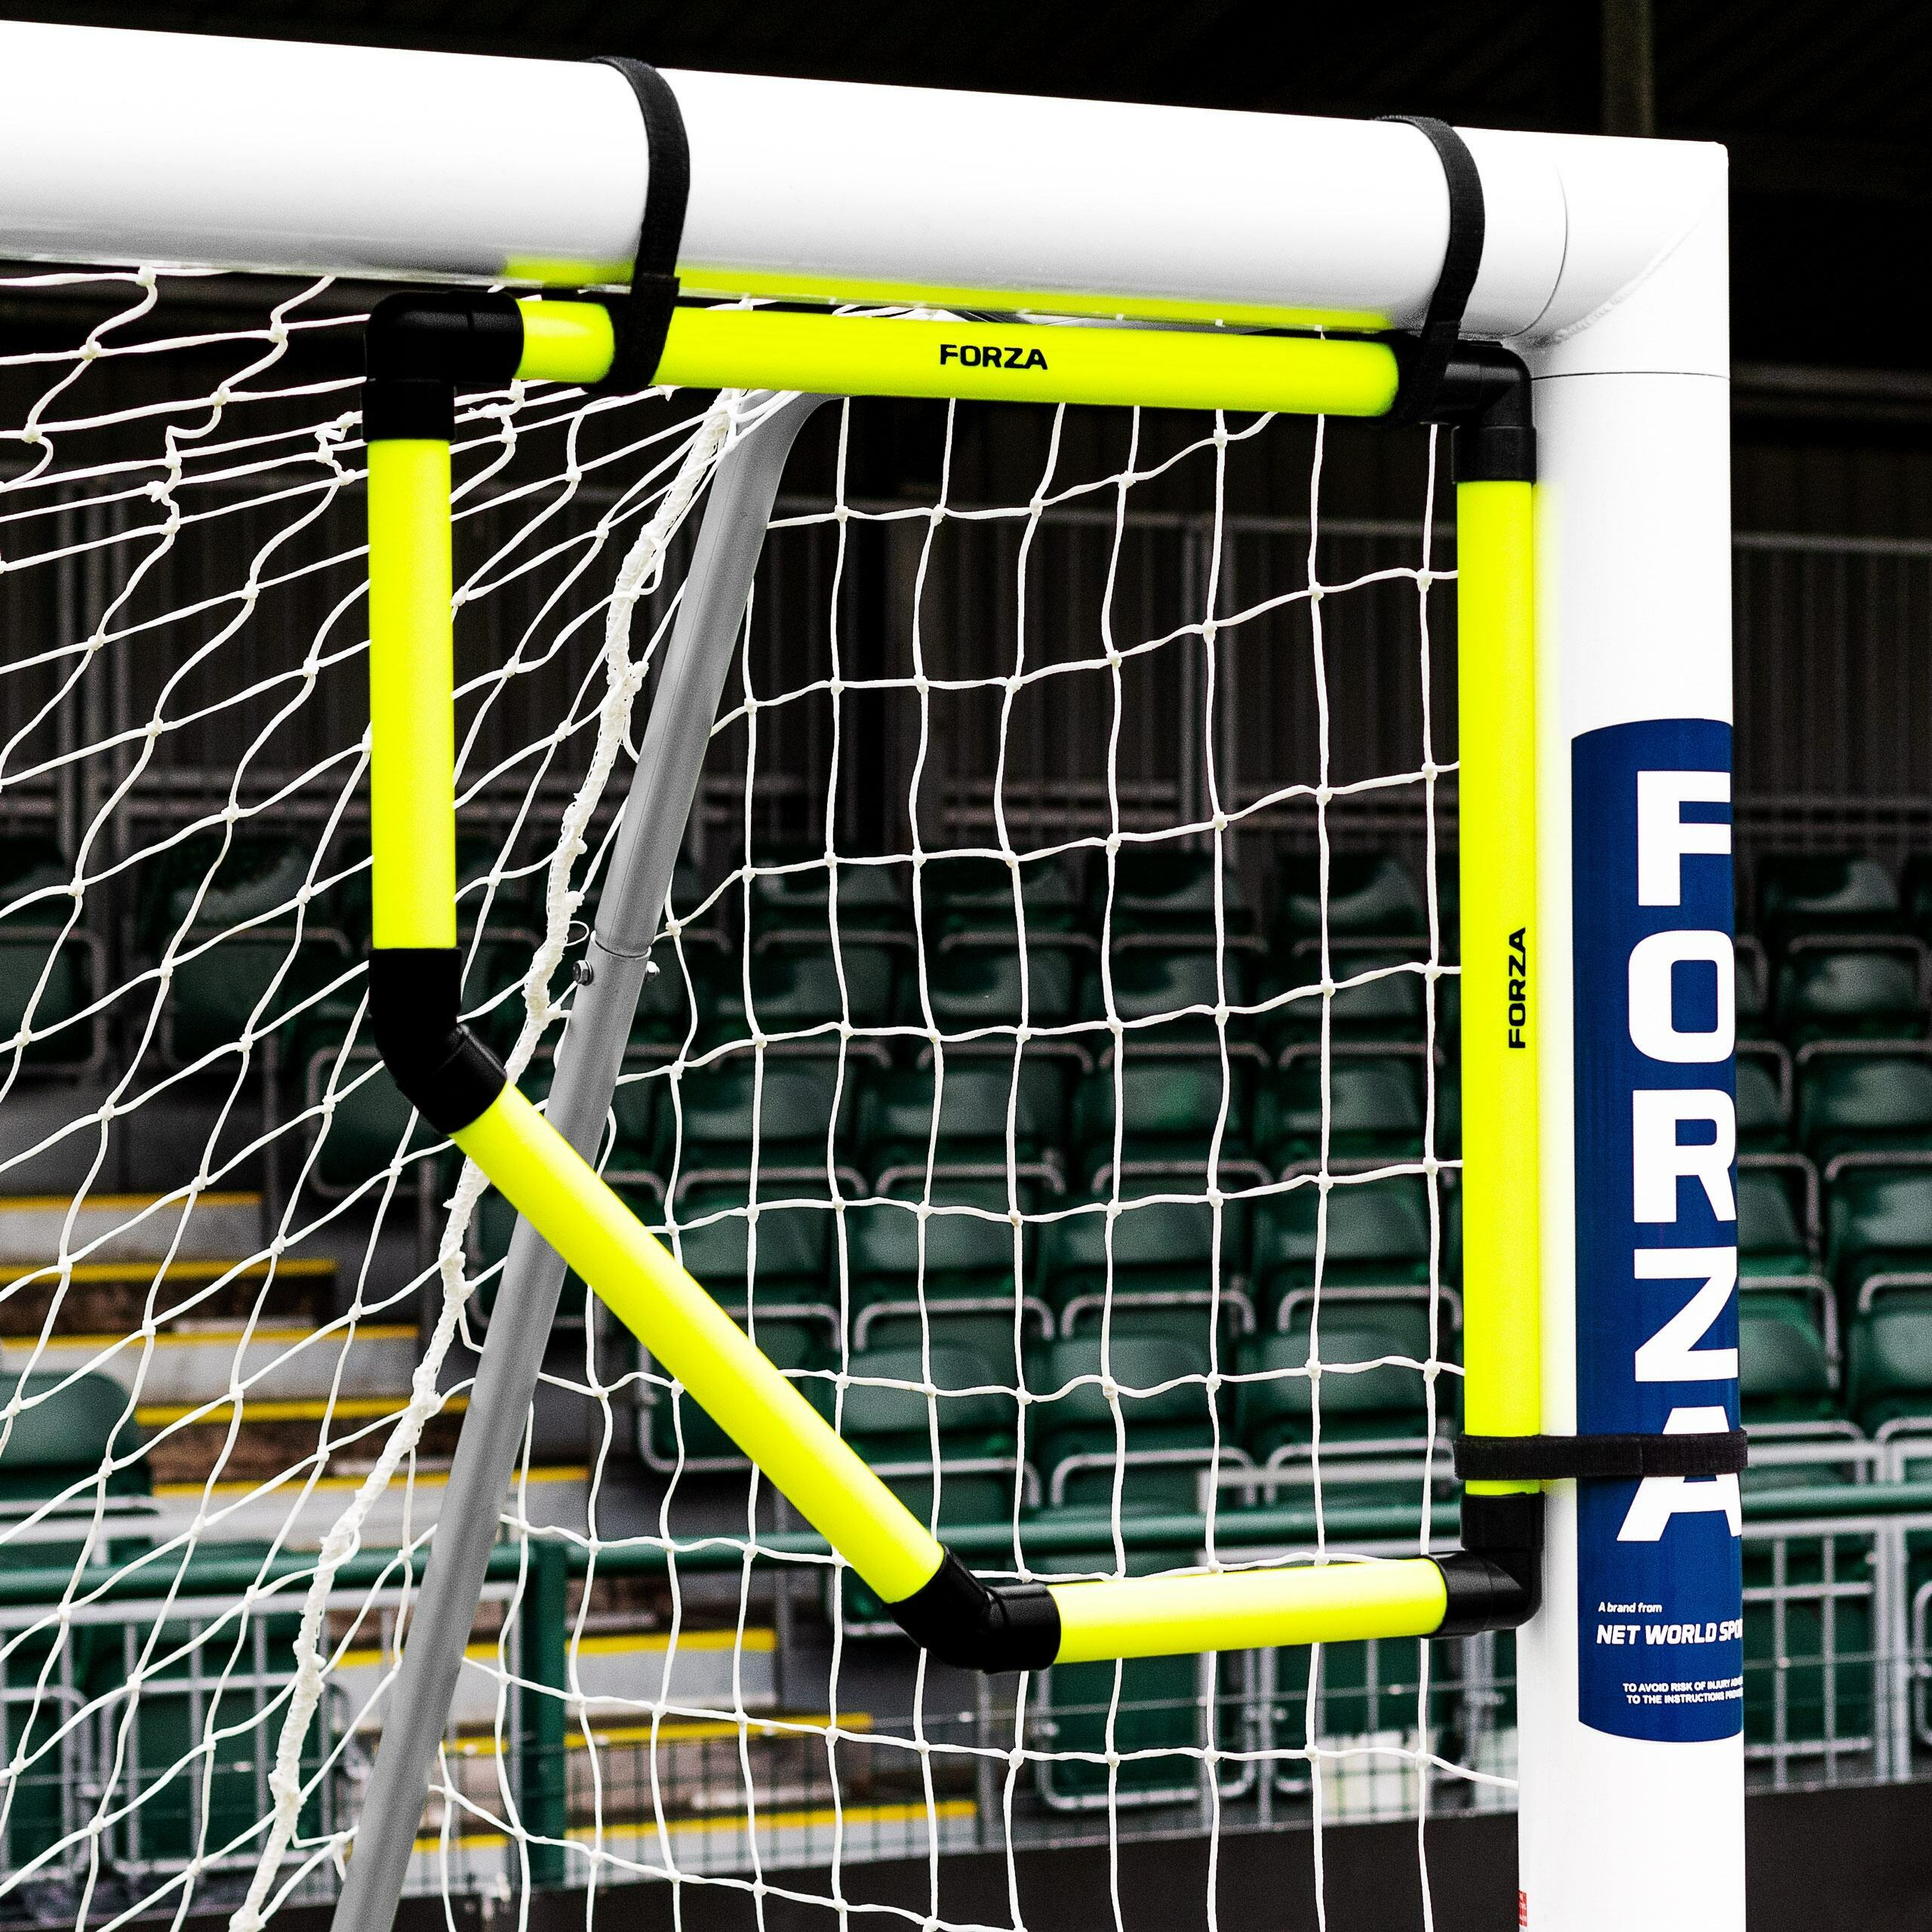 FORZA Top Bins - Football Goal Corner Target